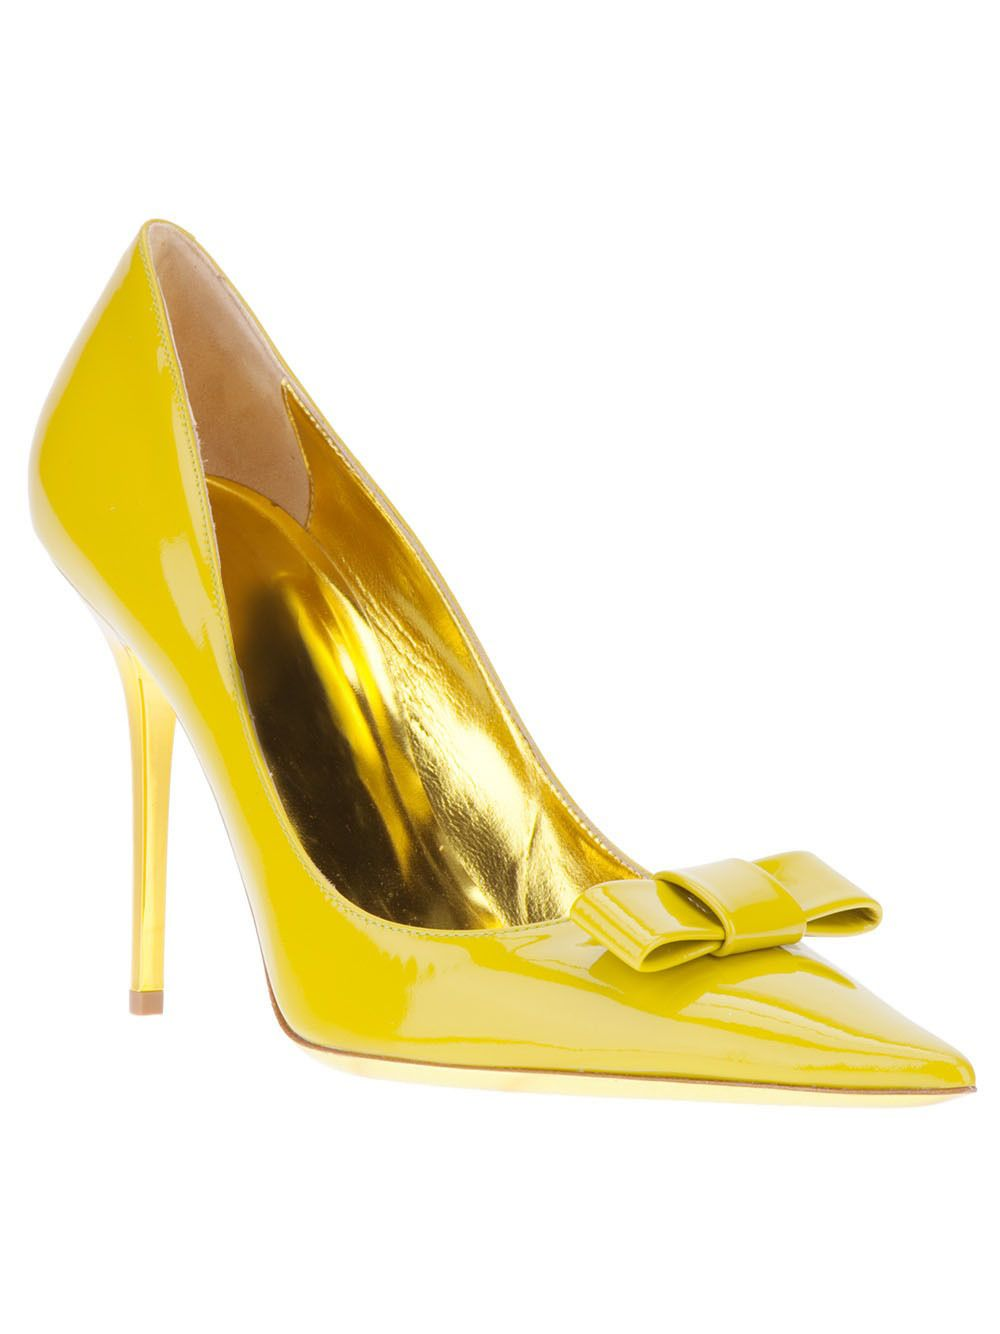 Yellow Patent Leather Women Pumps Bowtie Pointed Toe Slip Ons Thin High Heels Wedding Party Shoes